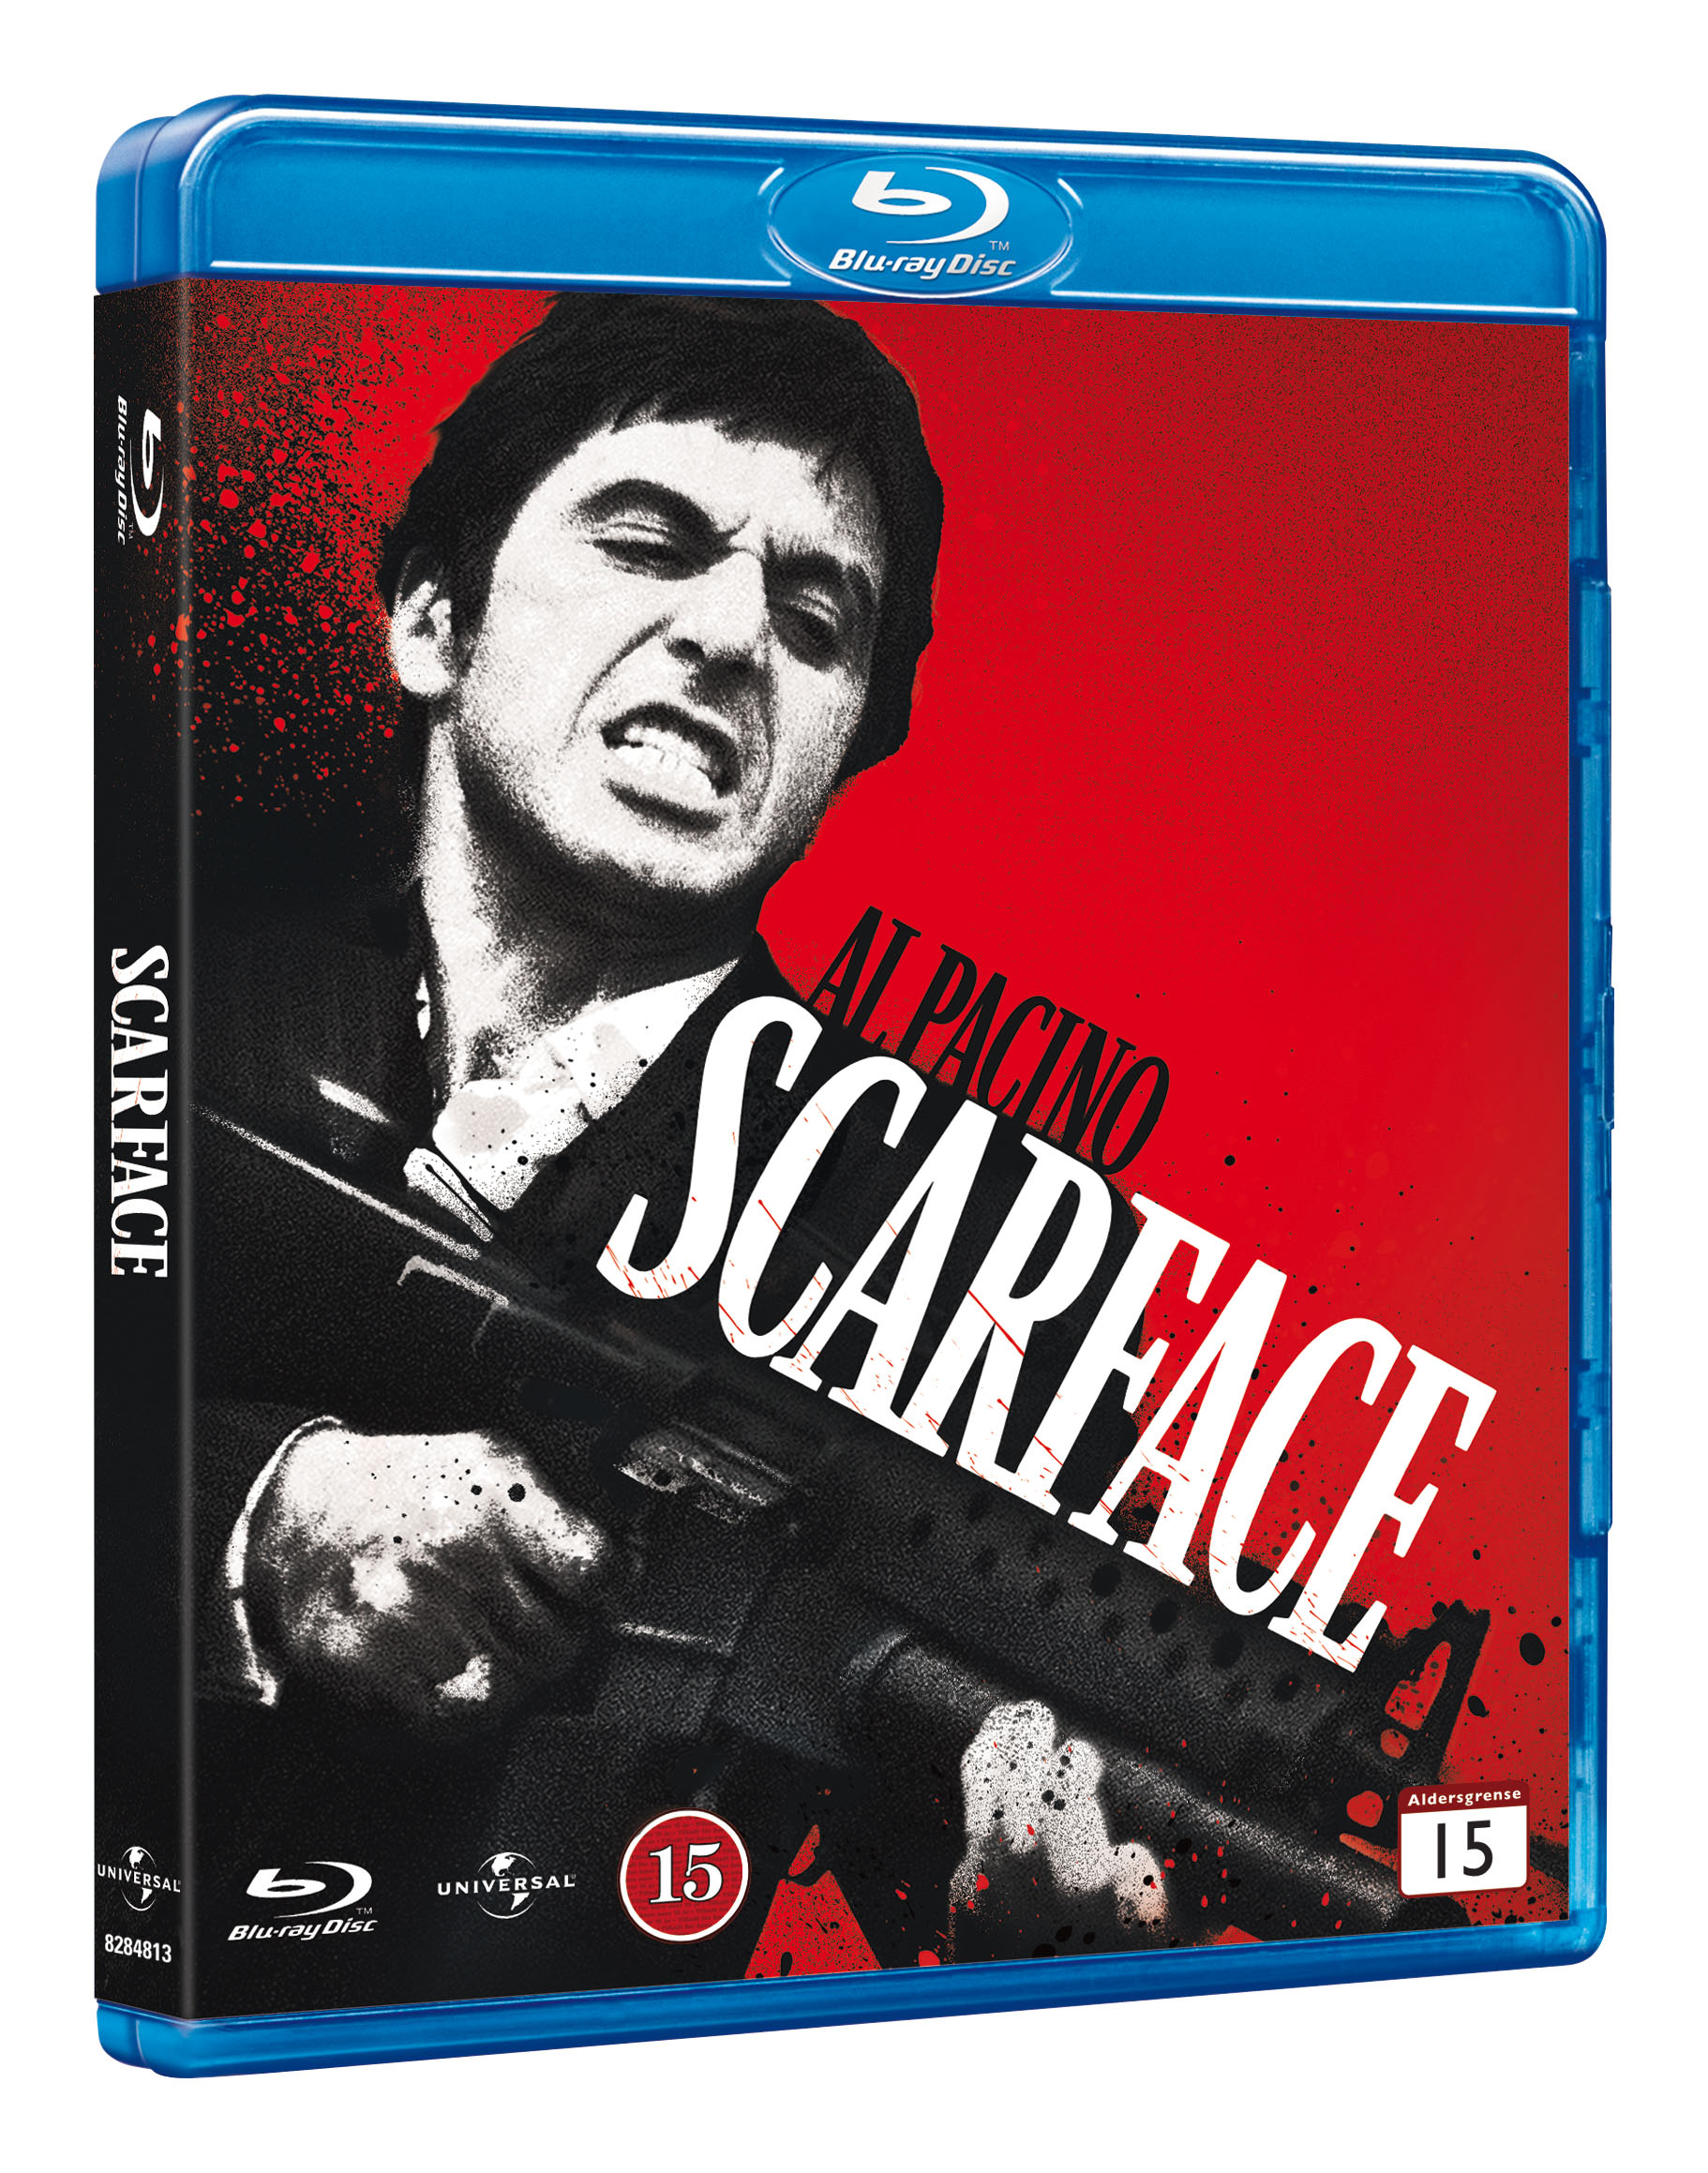 Scarface wallpapers screensavers wallpapersafari - The world is yours wallpaper ...